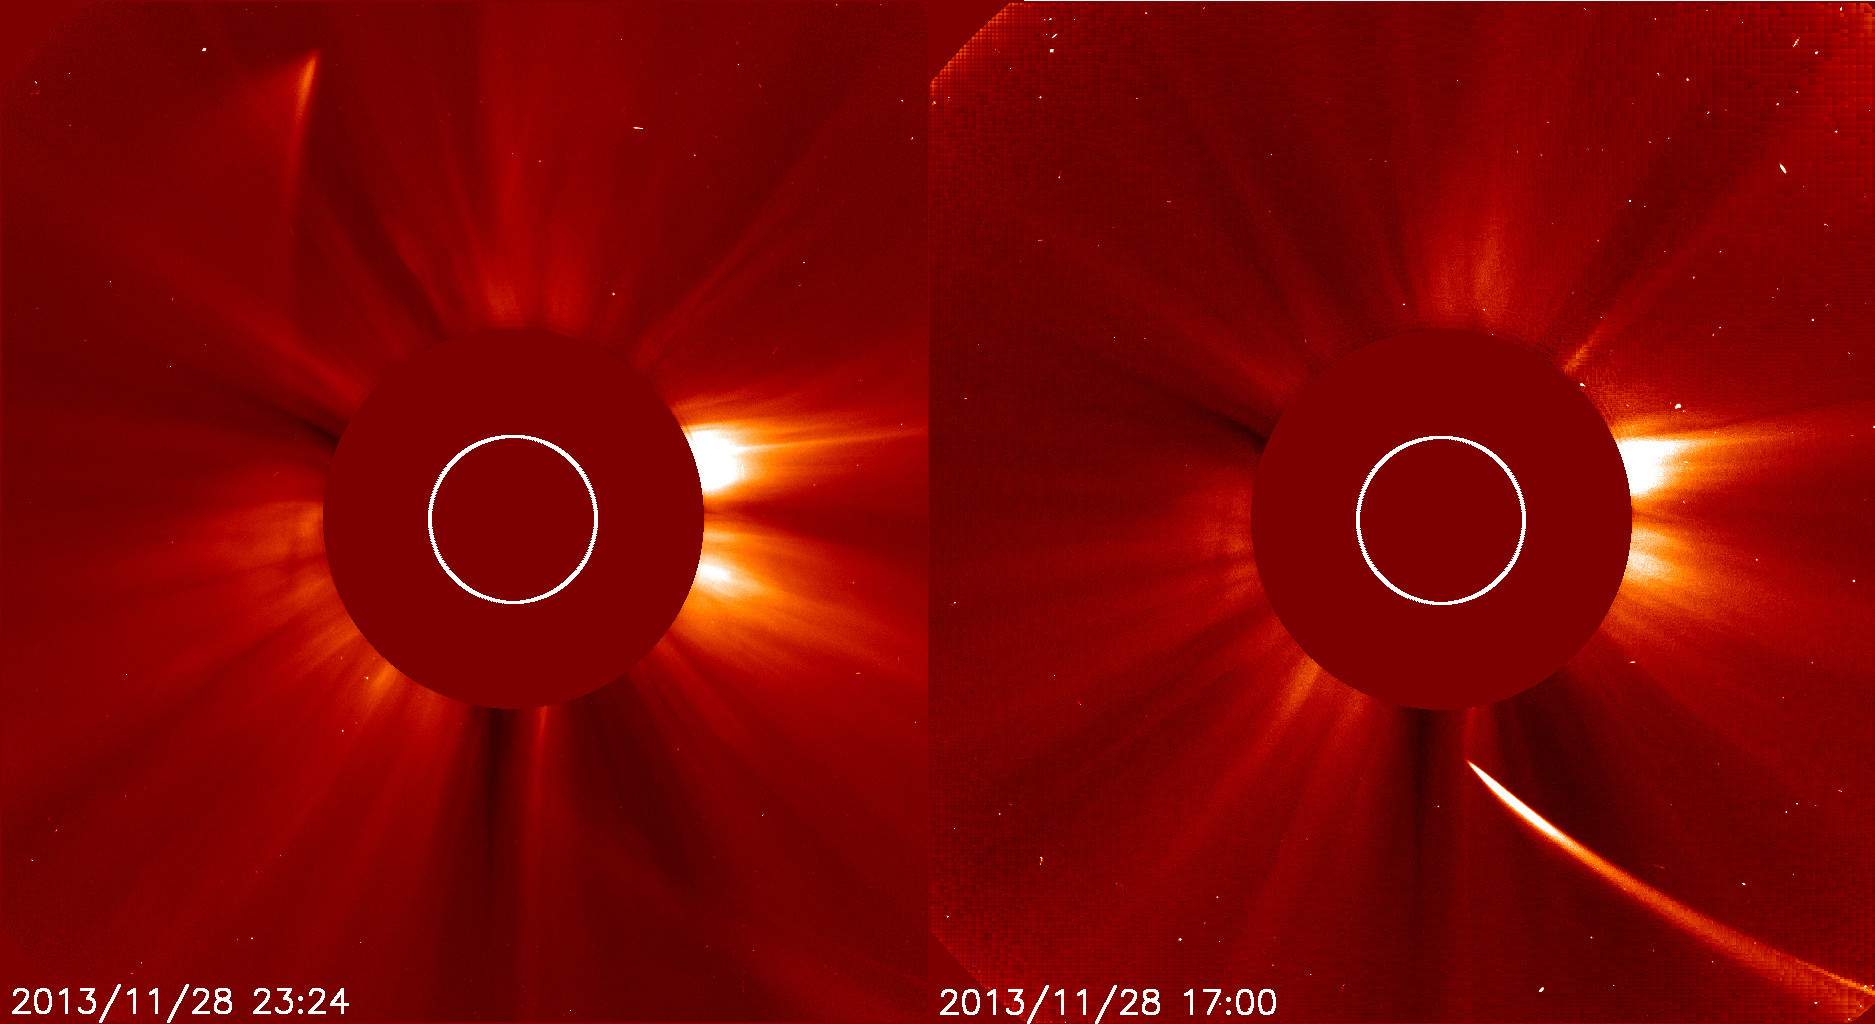 Comet ISON on its approach to the sun (right) and after its close pass (left). ISON was effectively destroyed in this passage. Image Credit: NASA, SOHO